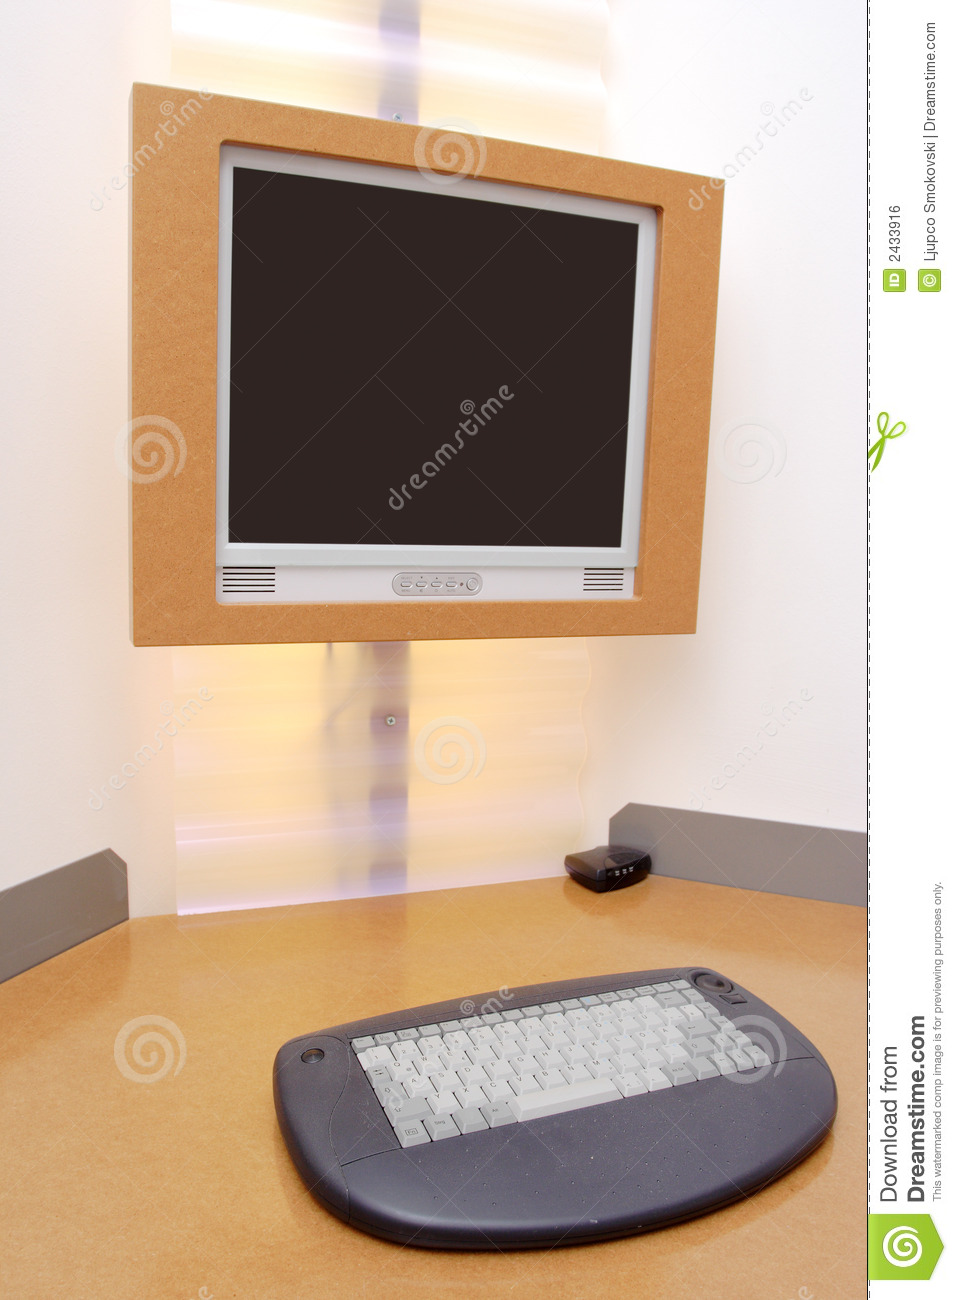 Hotel Room Desk: Computer Desk In A Hotel Royalty Free Stock Image